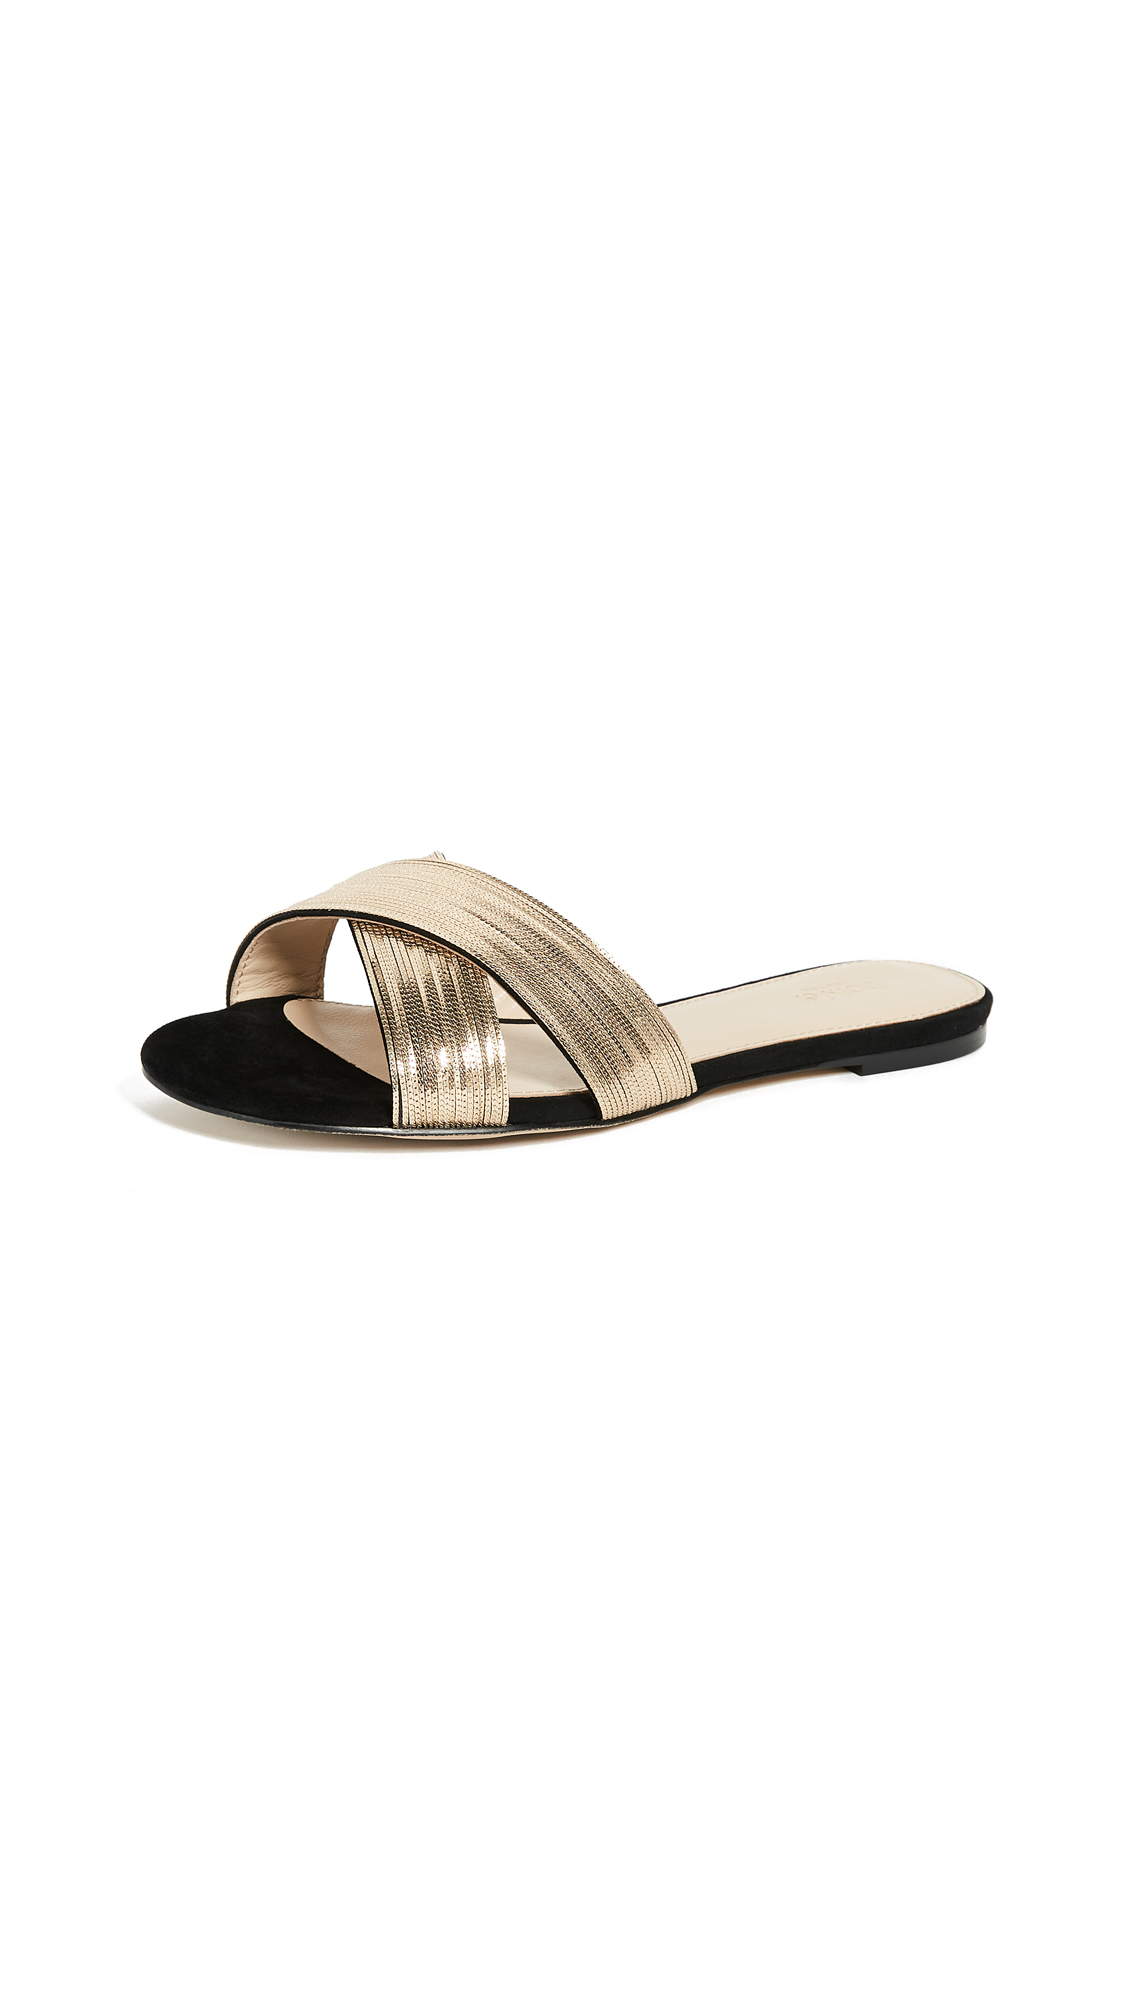 Botkier Millie Slides - Black Gold